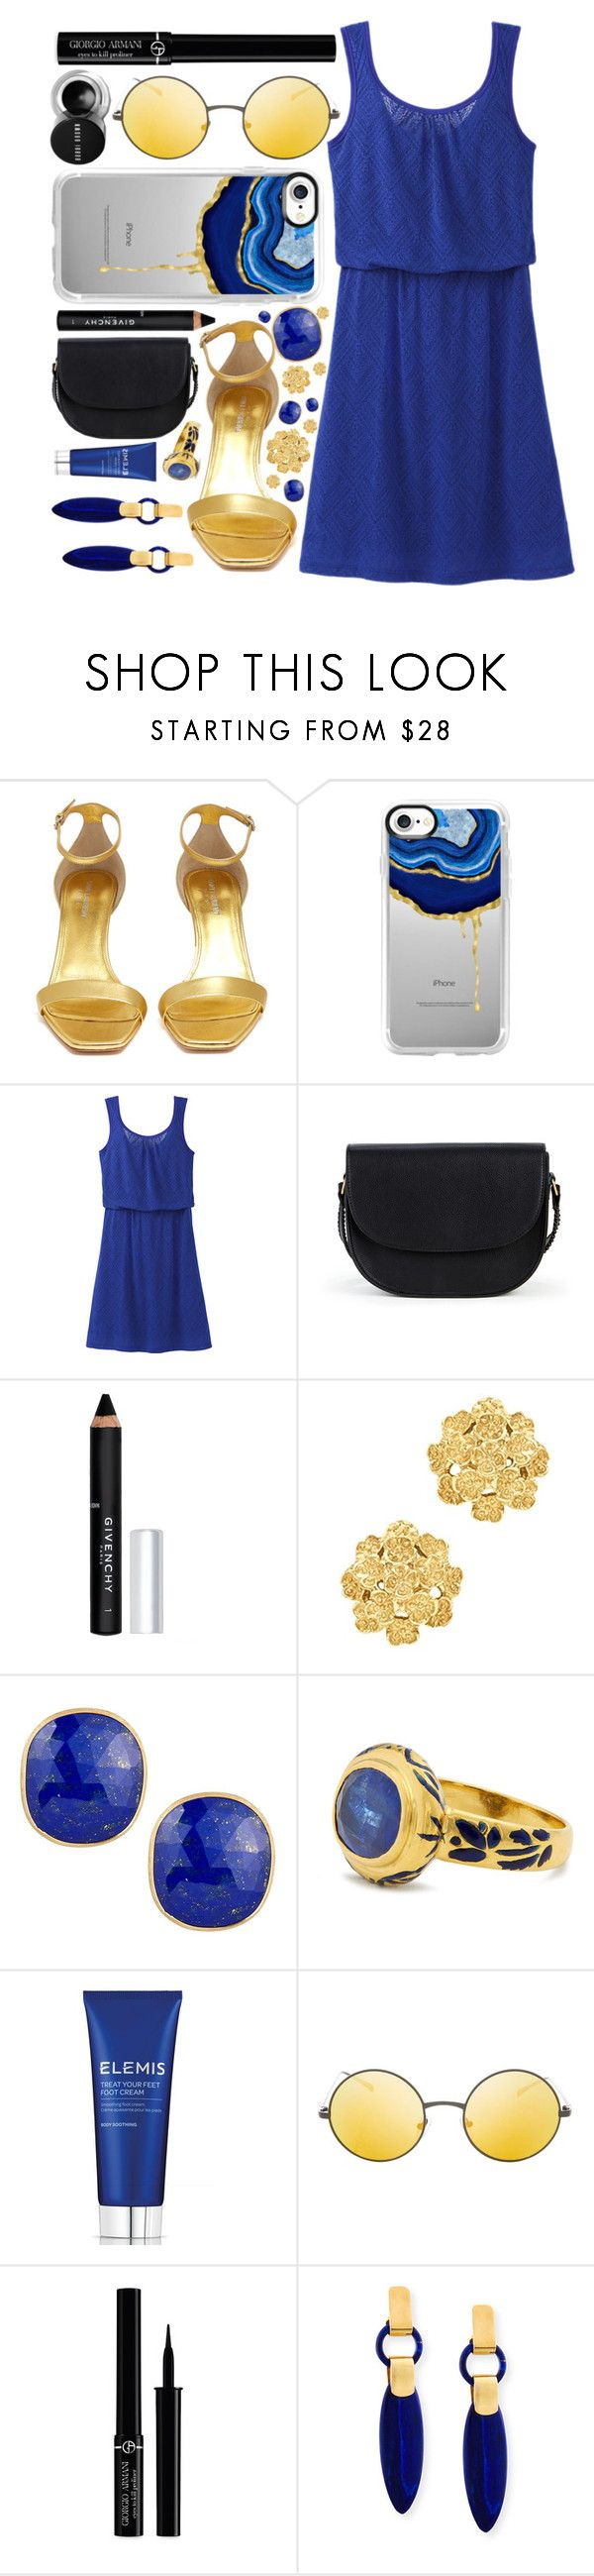 """""""Blue + Black + Gold"""" by aine-says-hi ❤ liked on Polyvore featuring Yves Saint Laurent, Casetify, prAna, Sole Society, Givenchy, London Road, Marco Bicego, Jade Jagger, Elemis and Topshop"""